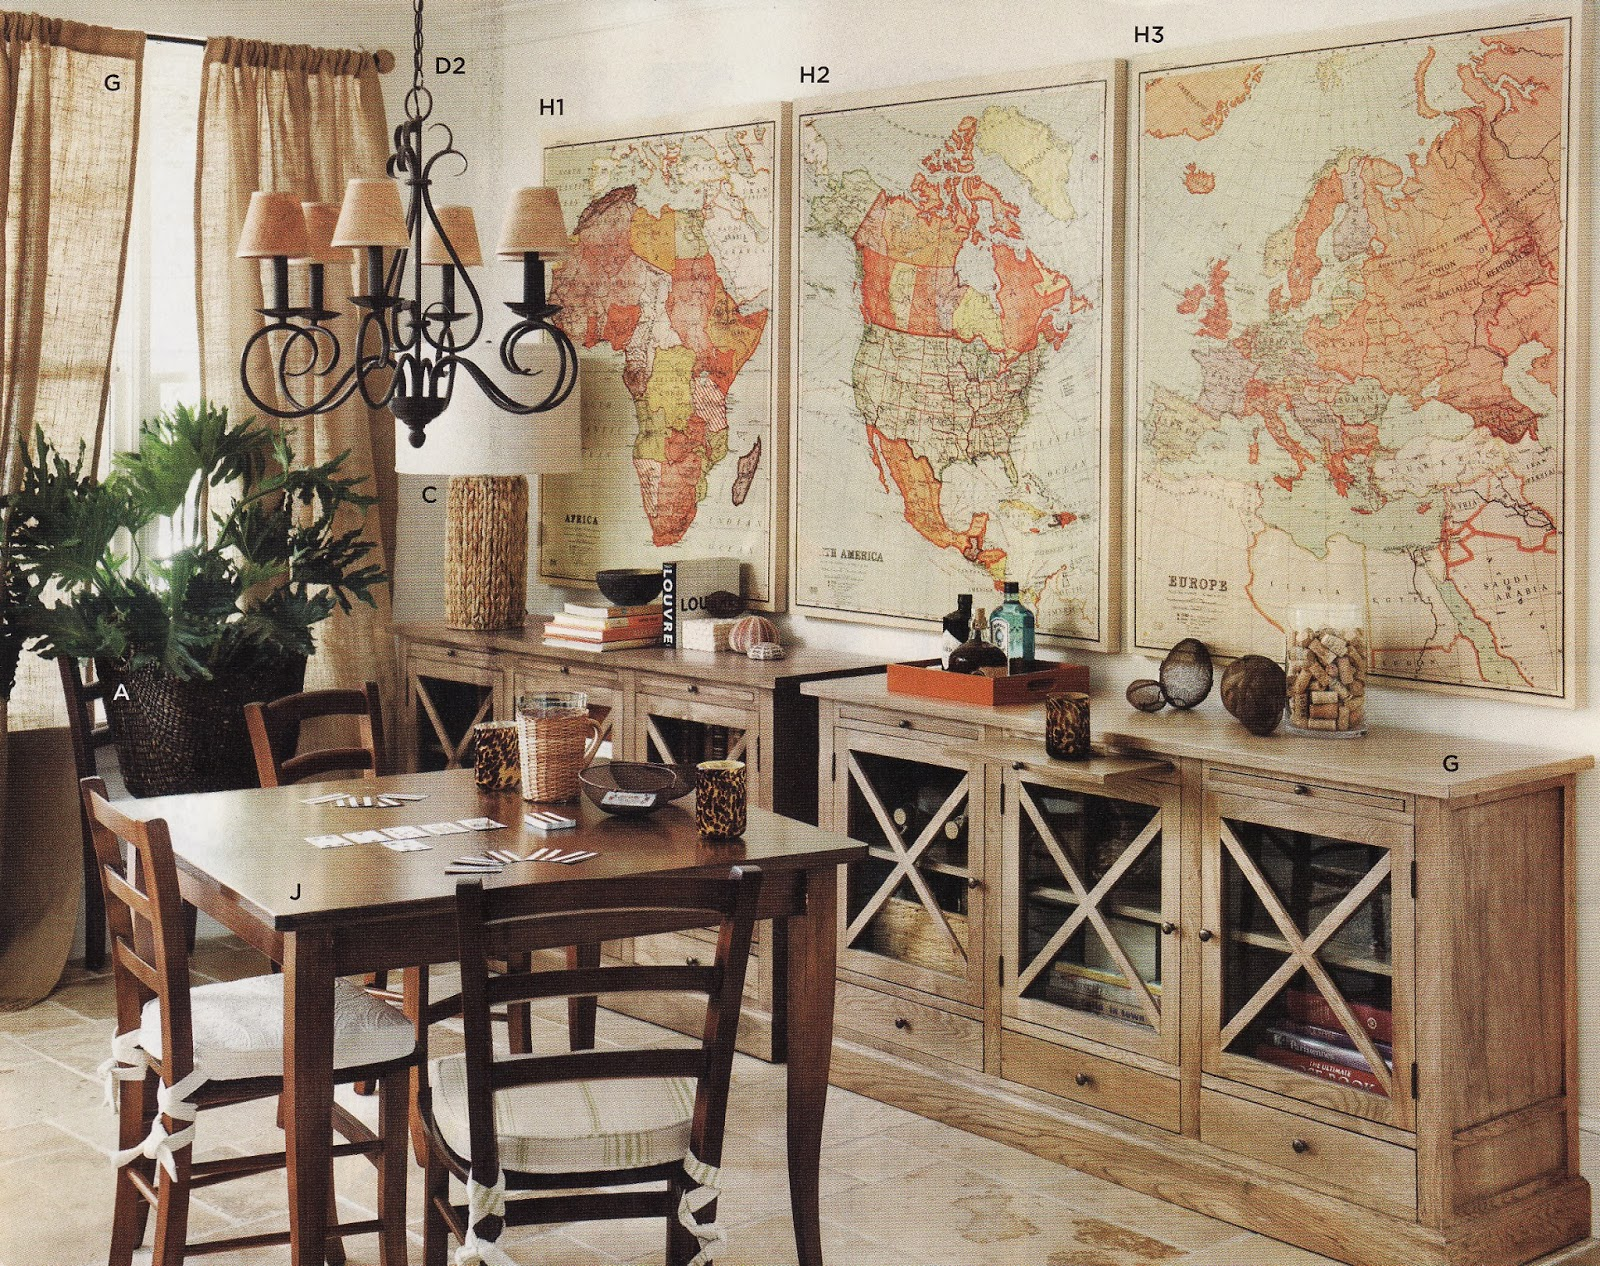 Creative juices decor oh for the love of maps home for Home decoration tips